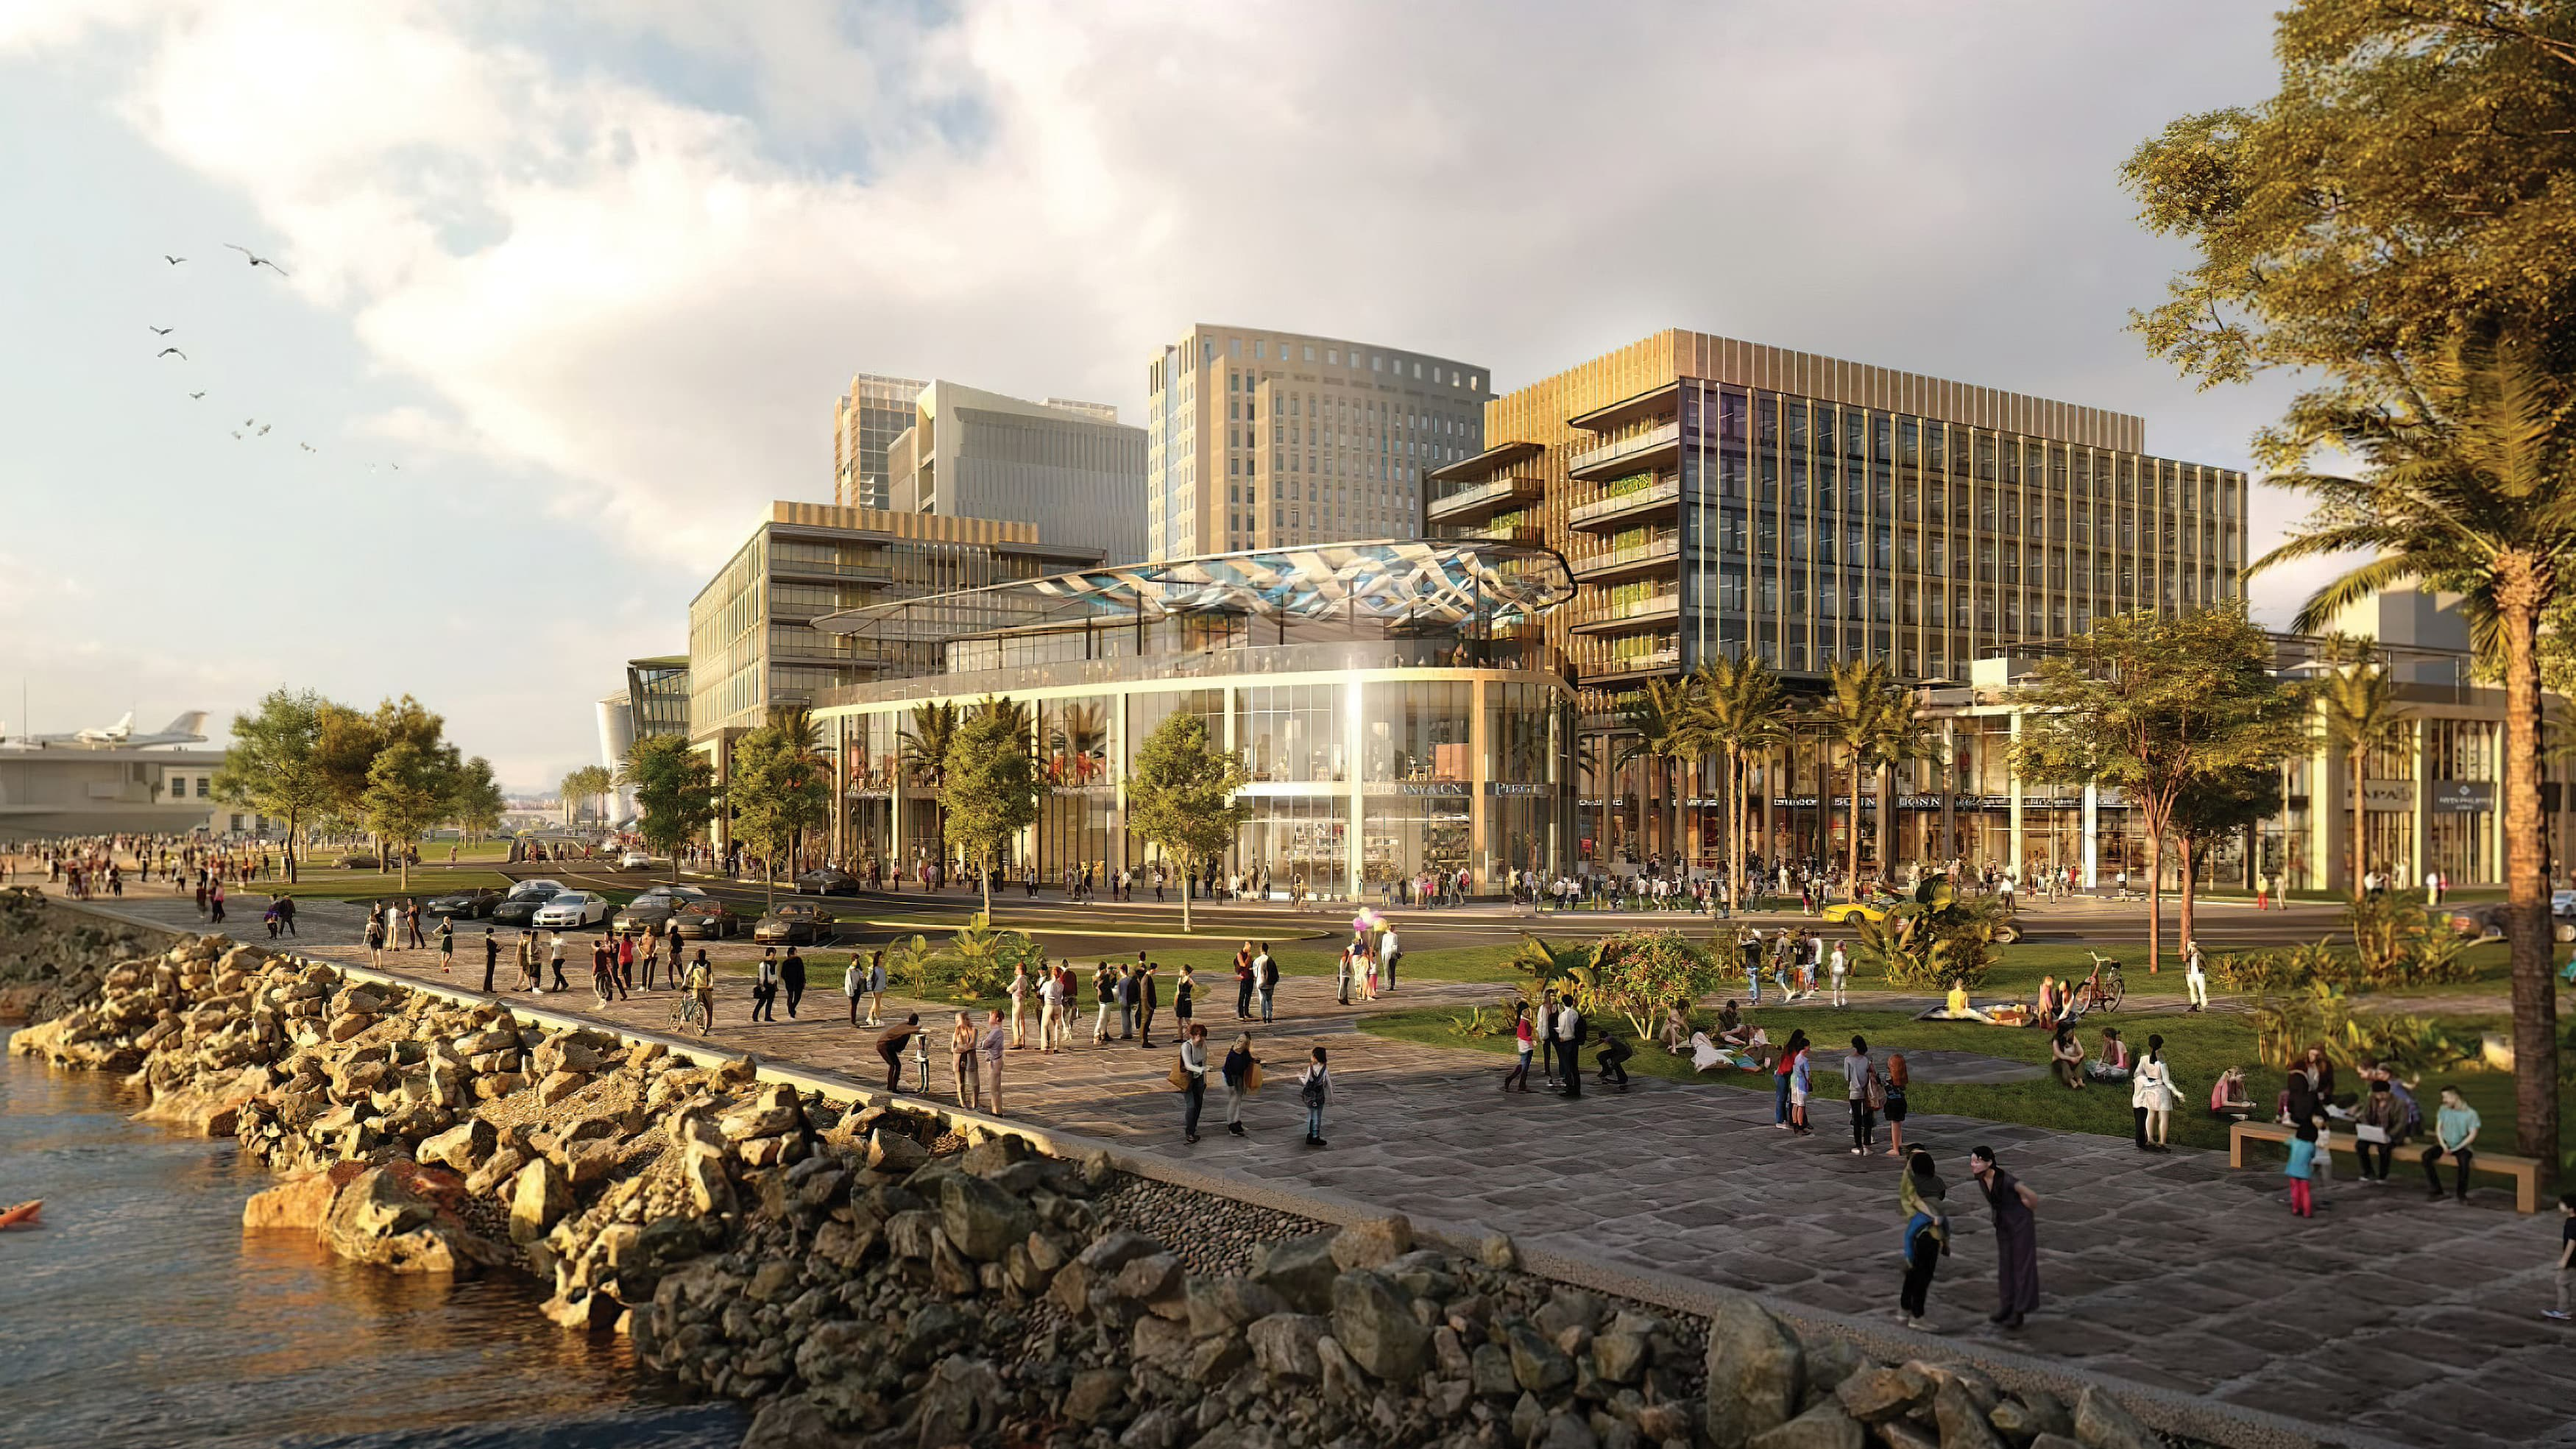 The Research and Development District (RaDD) on the waterfront of downtown San Diego, California.